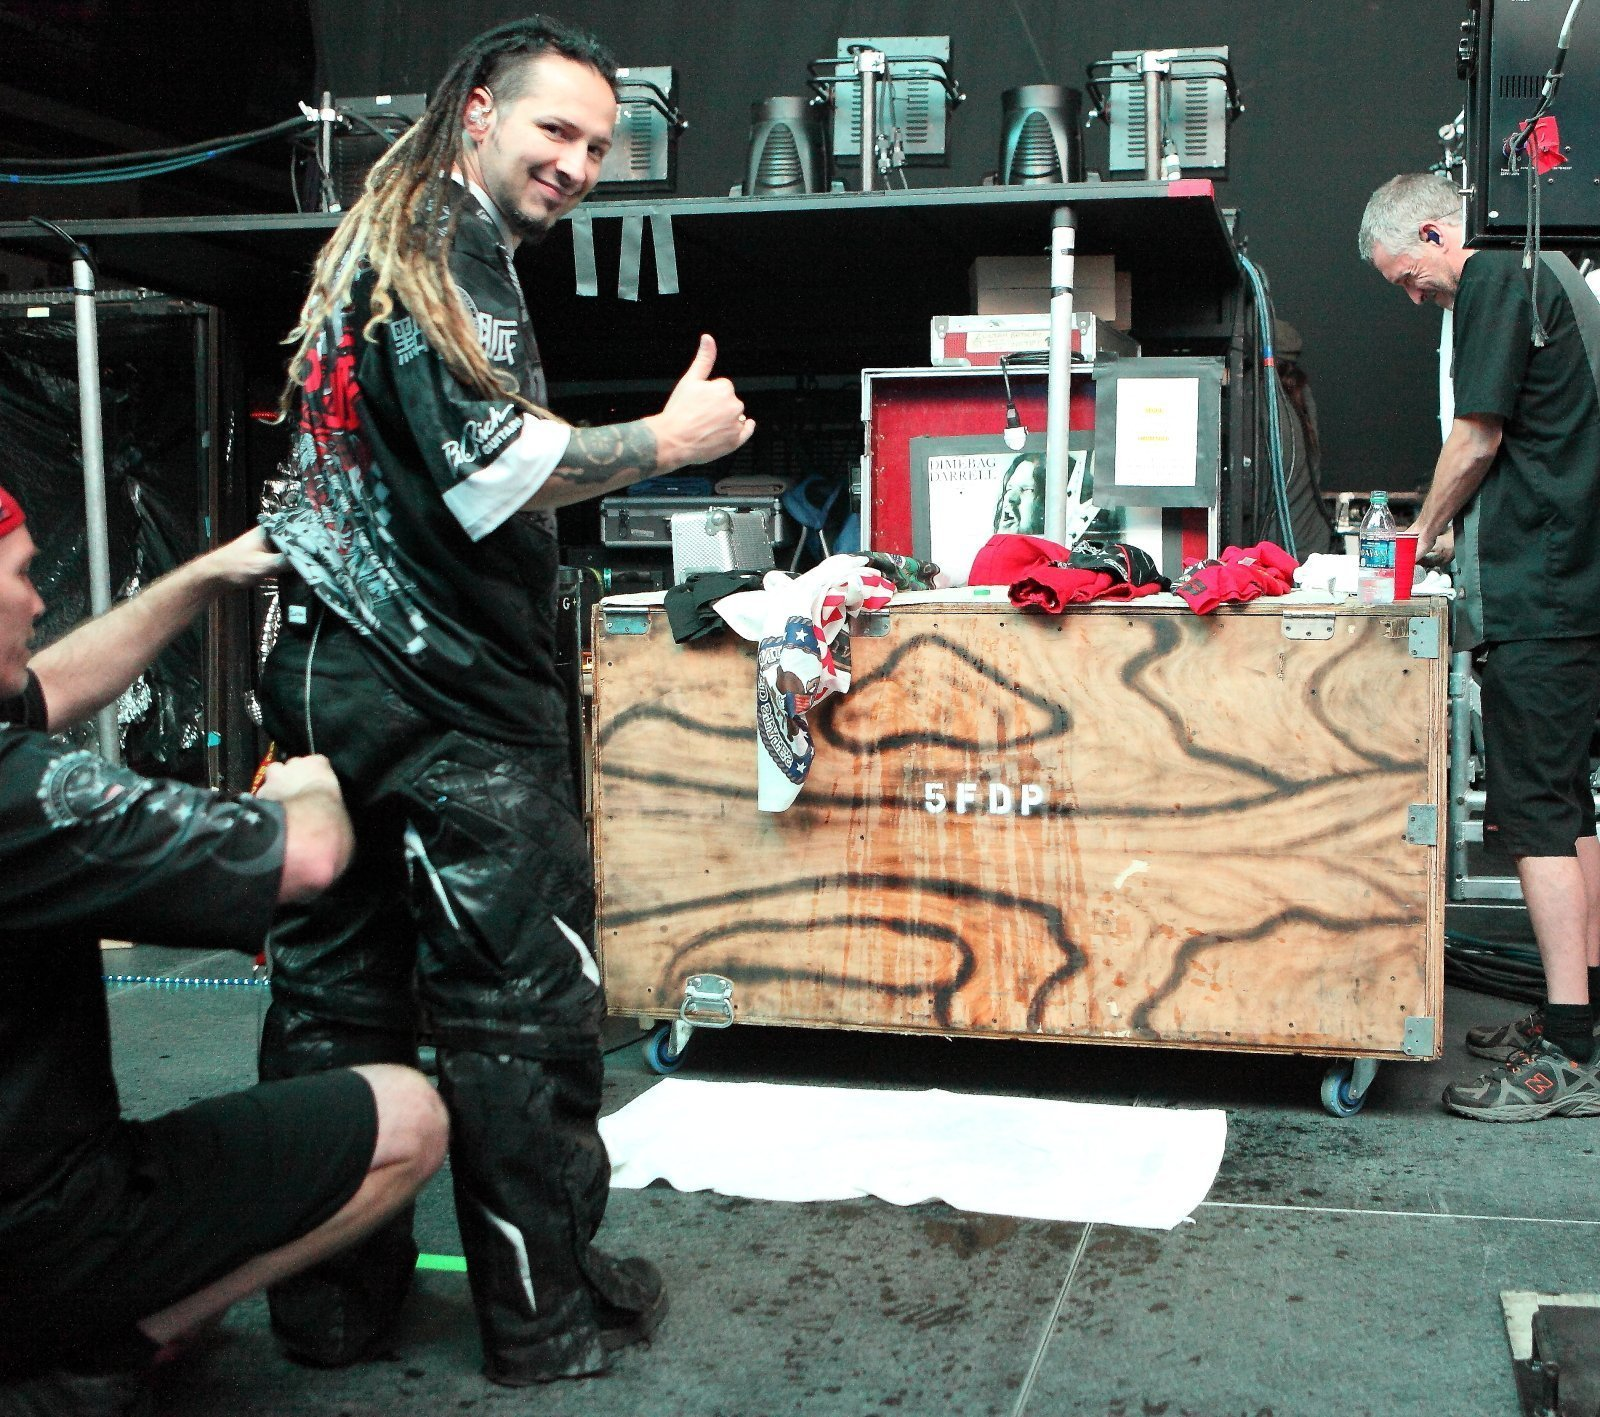 Zoltan Bathory of Five Finger Death Punch preparing for a show. Photo by Harry Reese